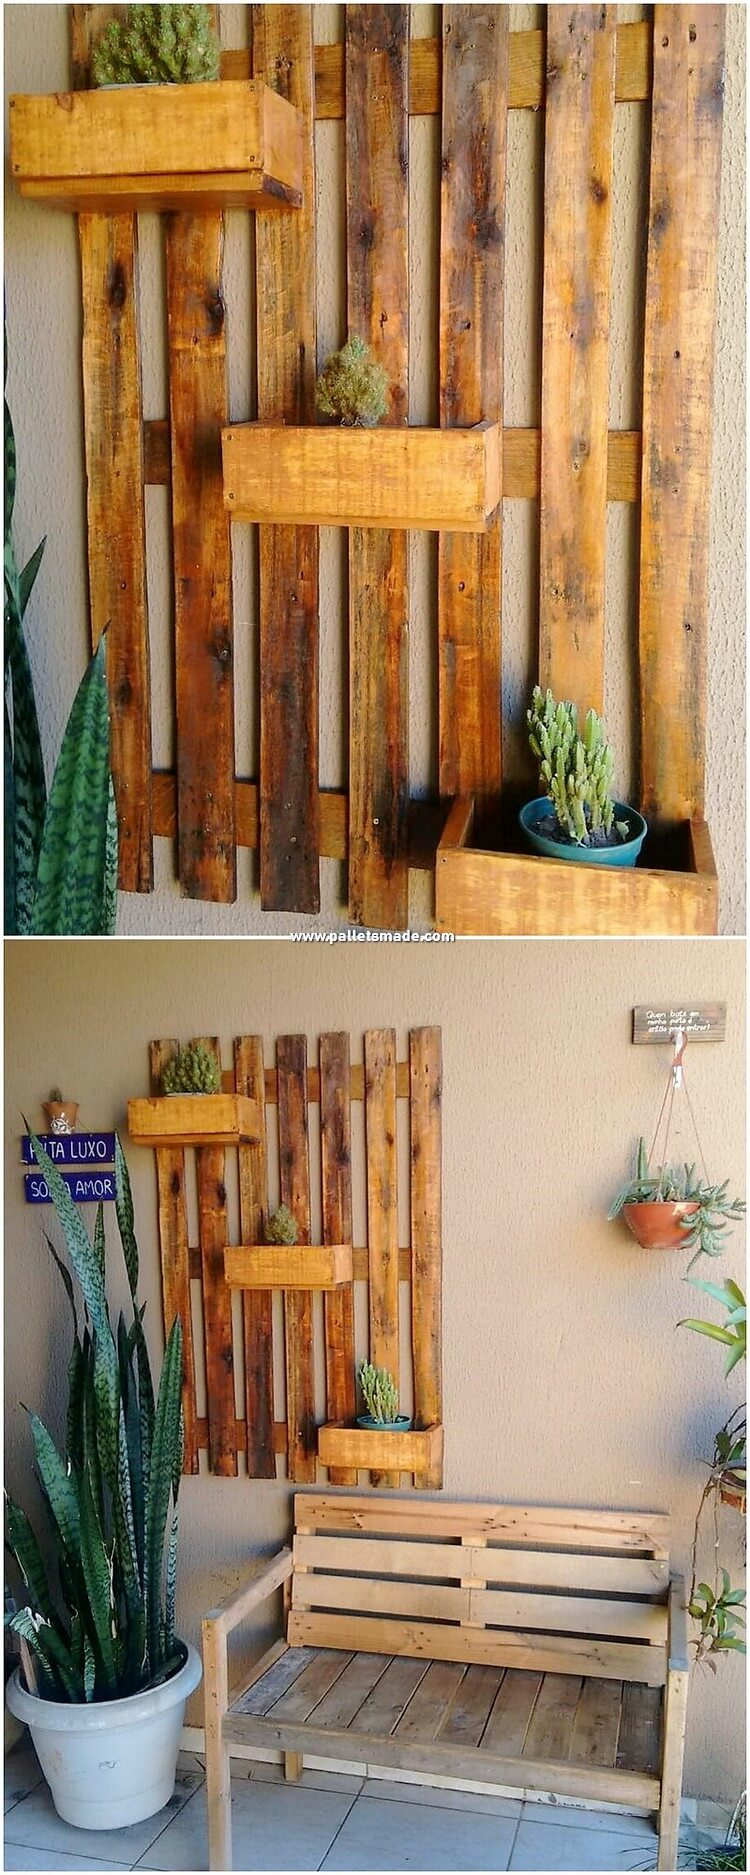 Pallet Wall Planter and Bench